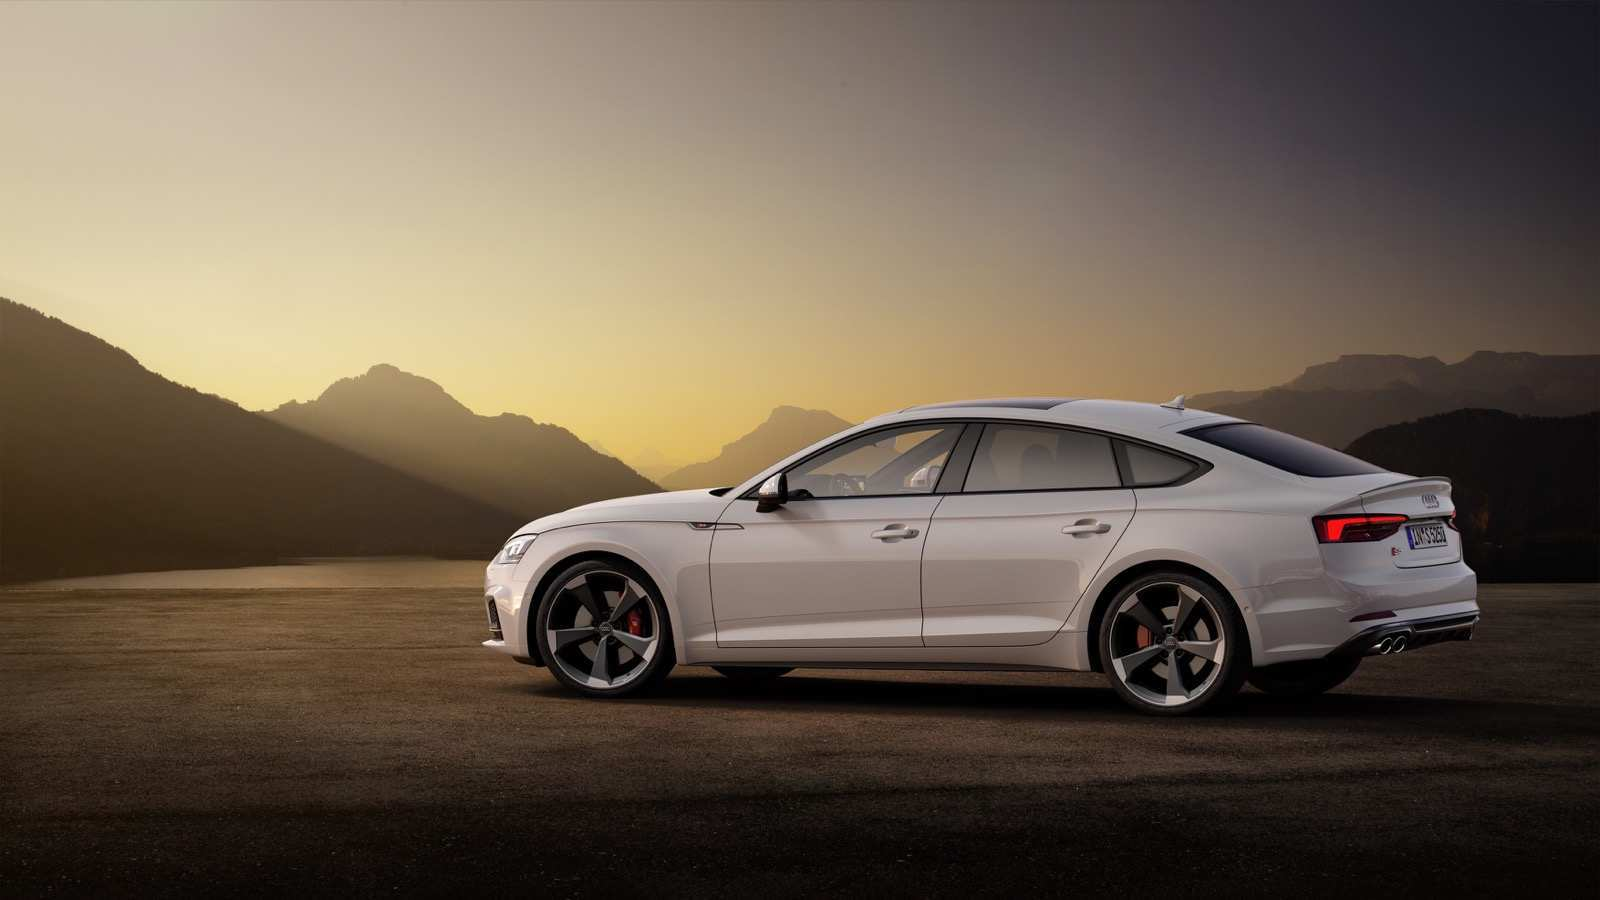 86 The Best 2019 Audi Rs5 Tdi Price And Release Date